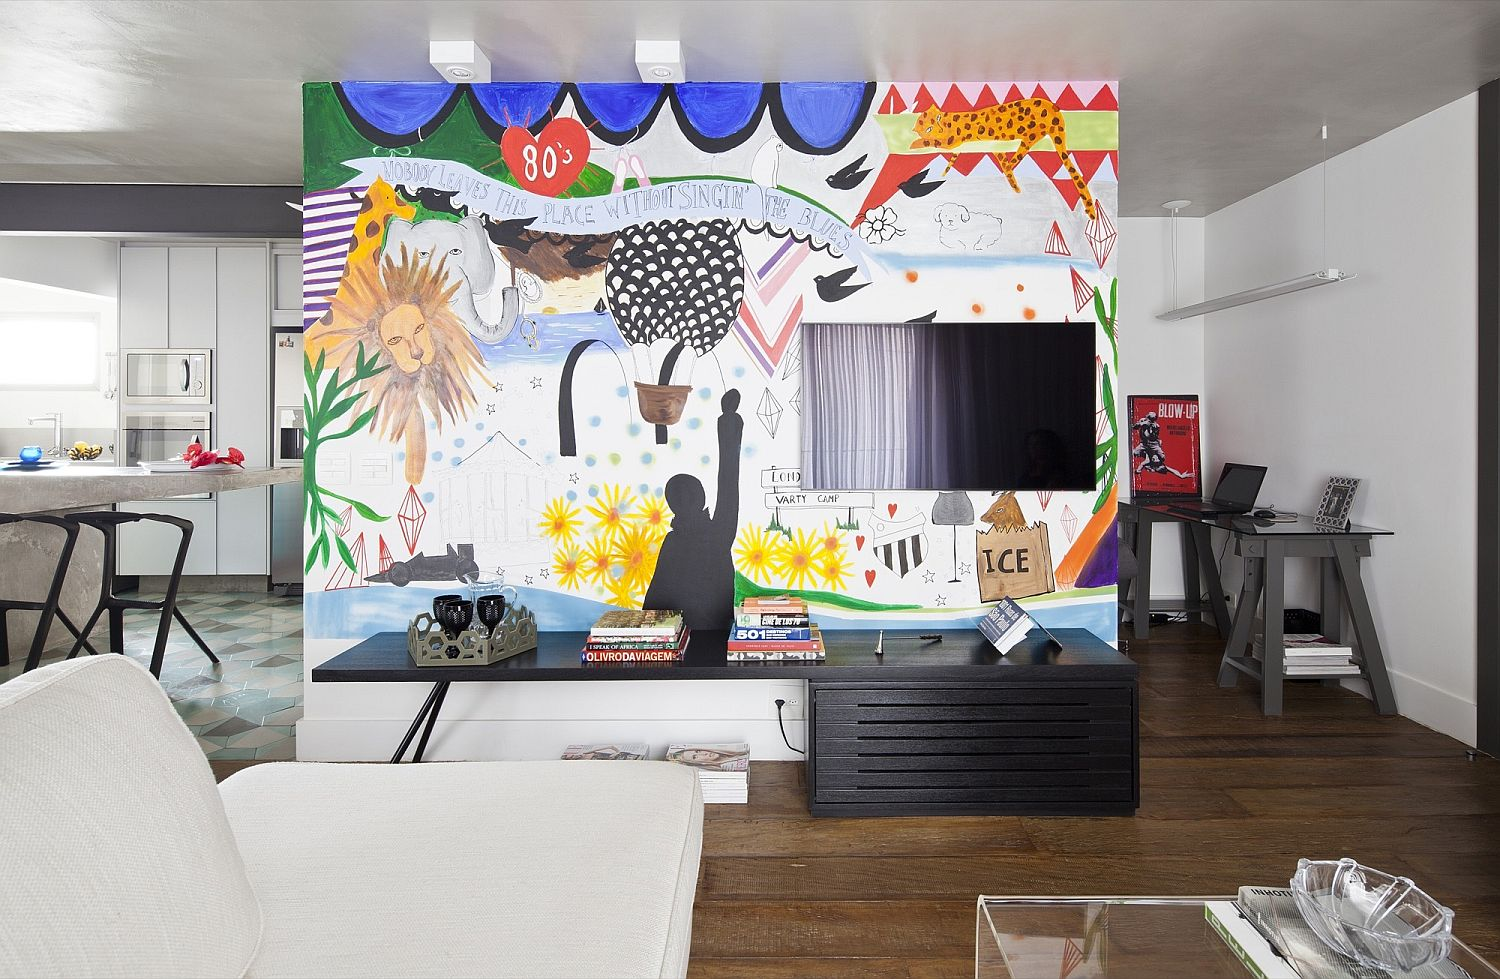 Graffiti wall becomes focal point of the bold modern living room